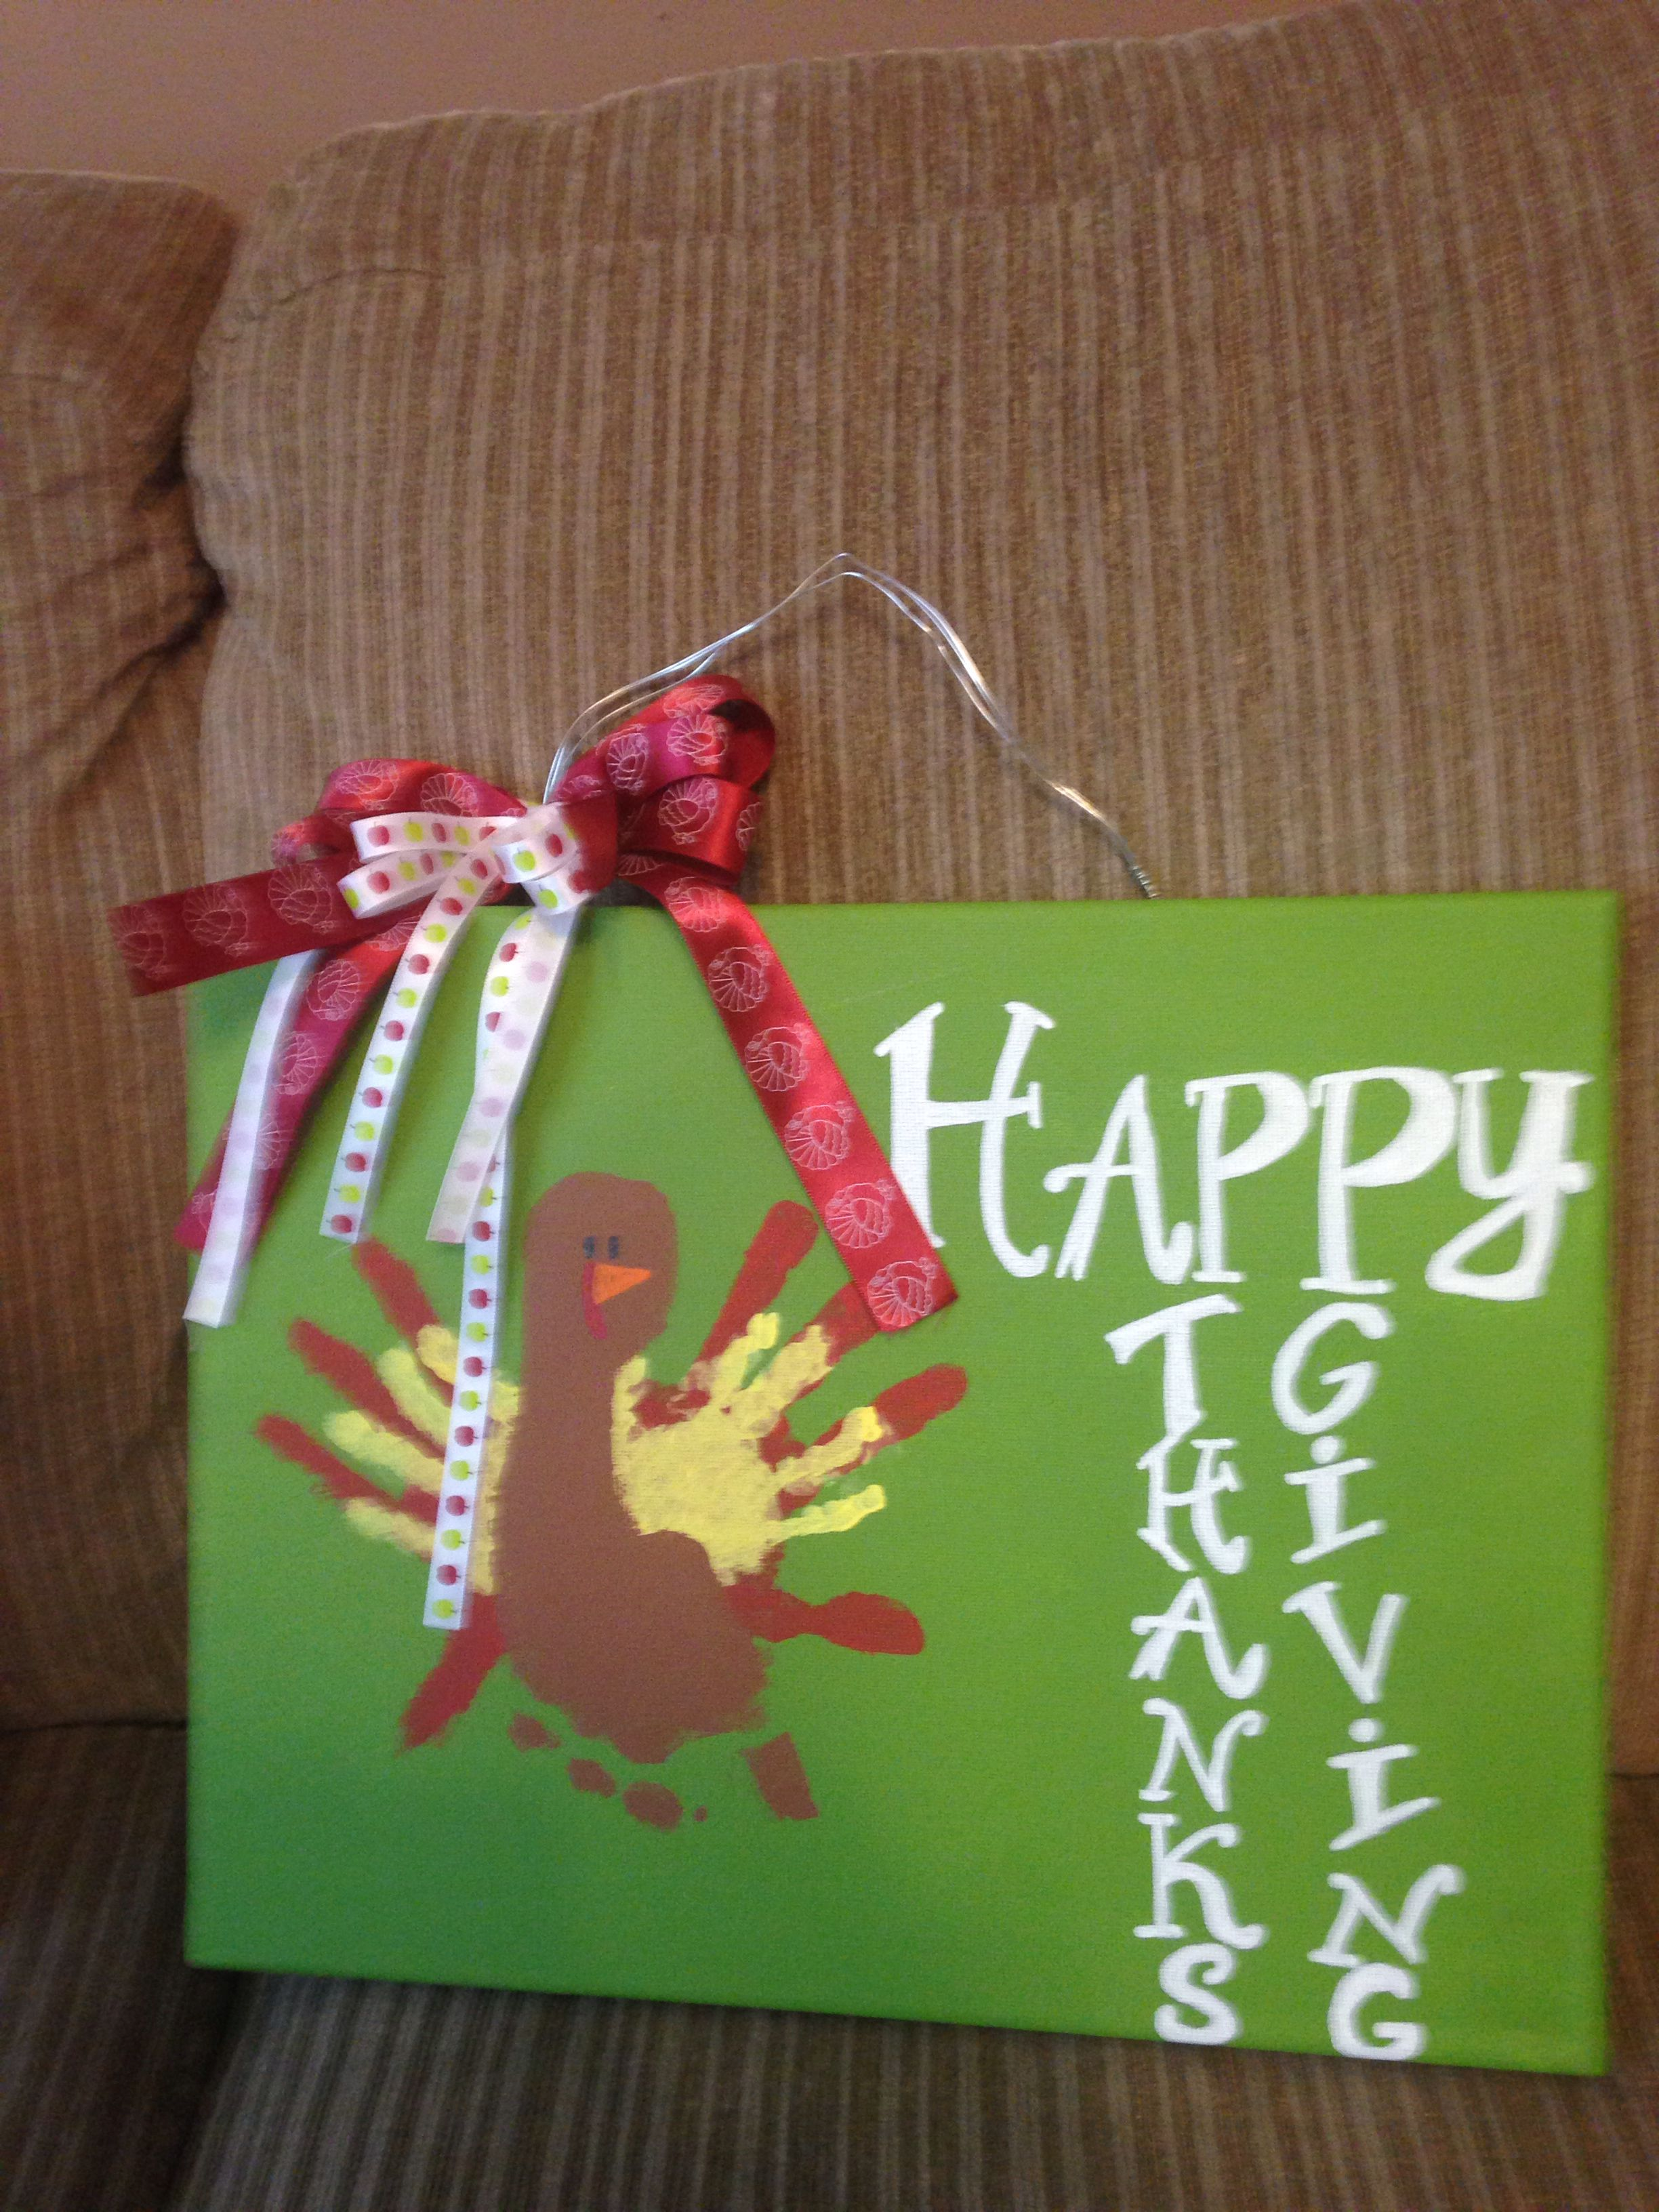 Happy Thanksgiving! Made by Whitney Garibaldi in Morrison, Tennessee!